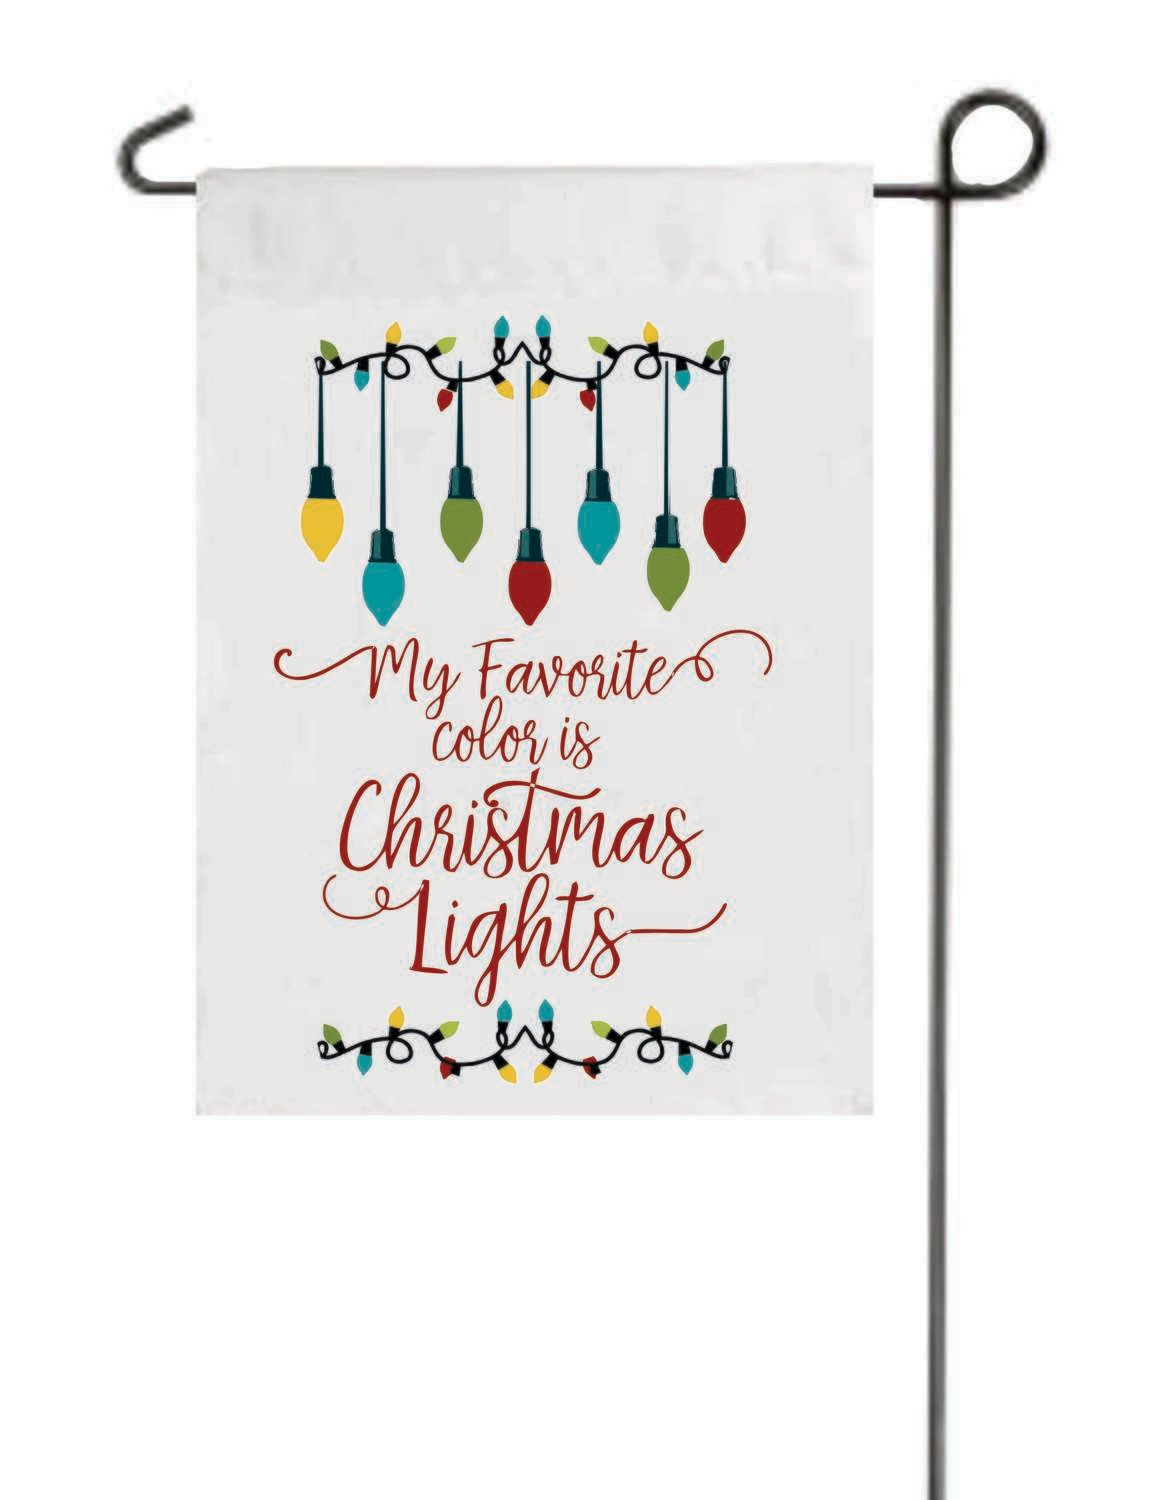 My Favorite Color is Christmas Lights - Flag